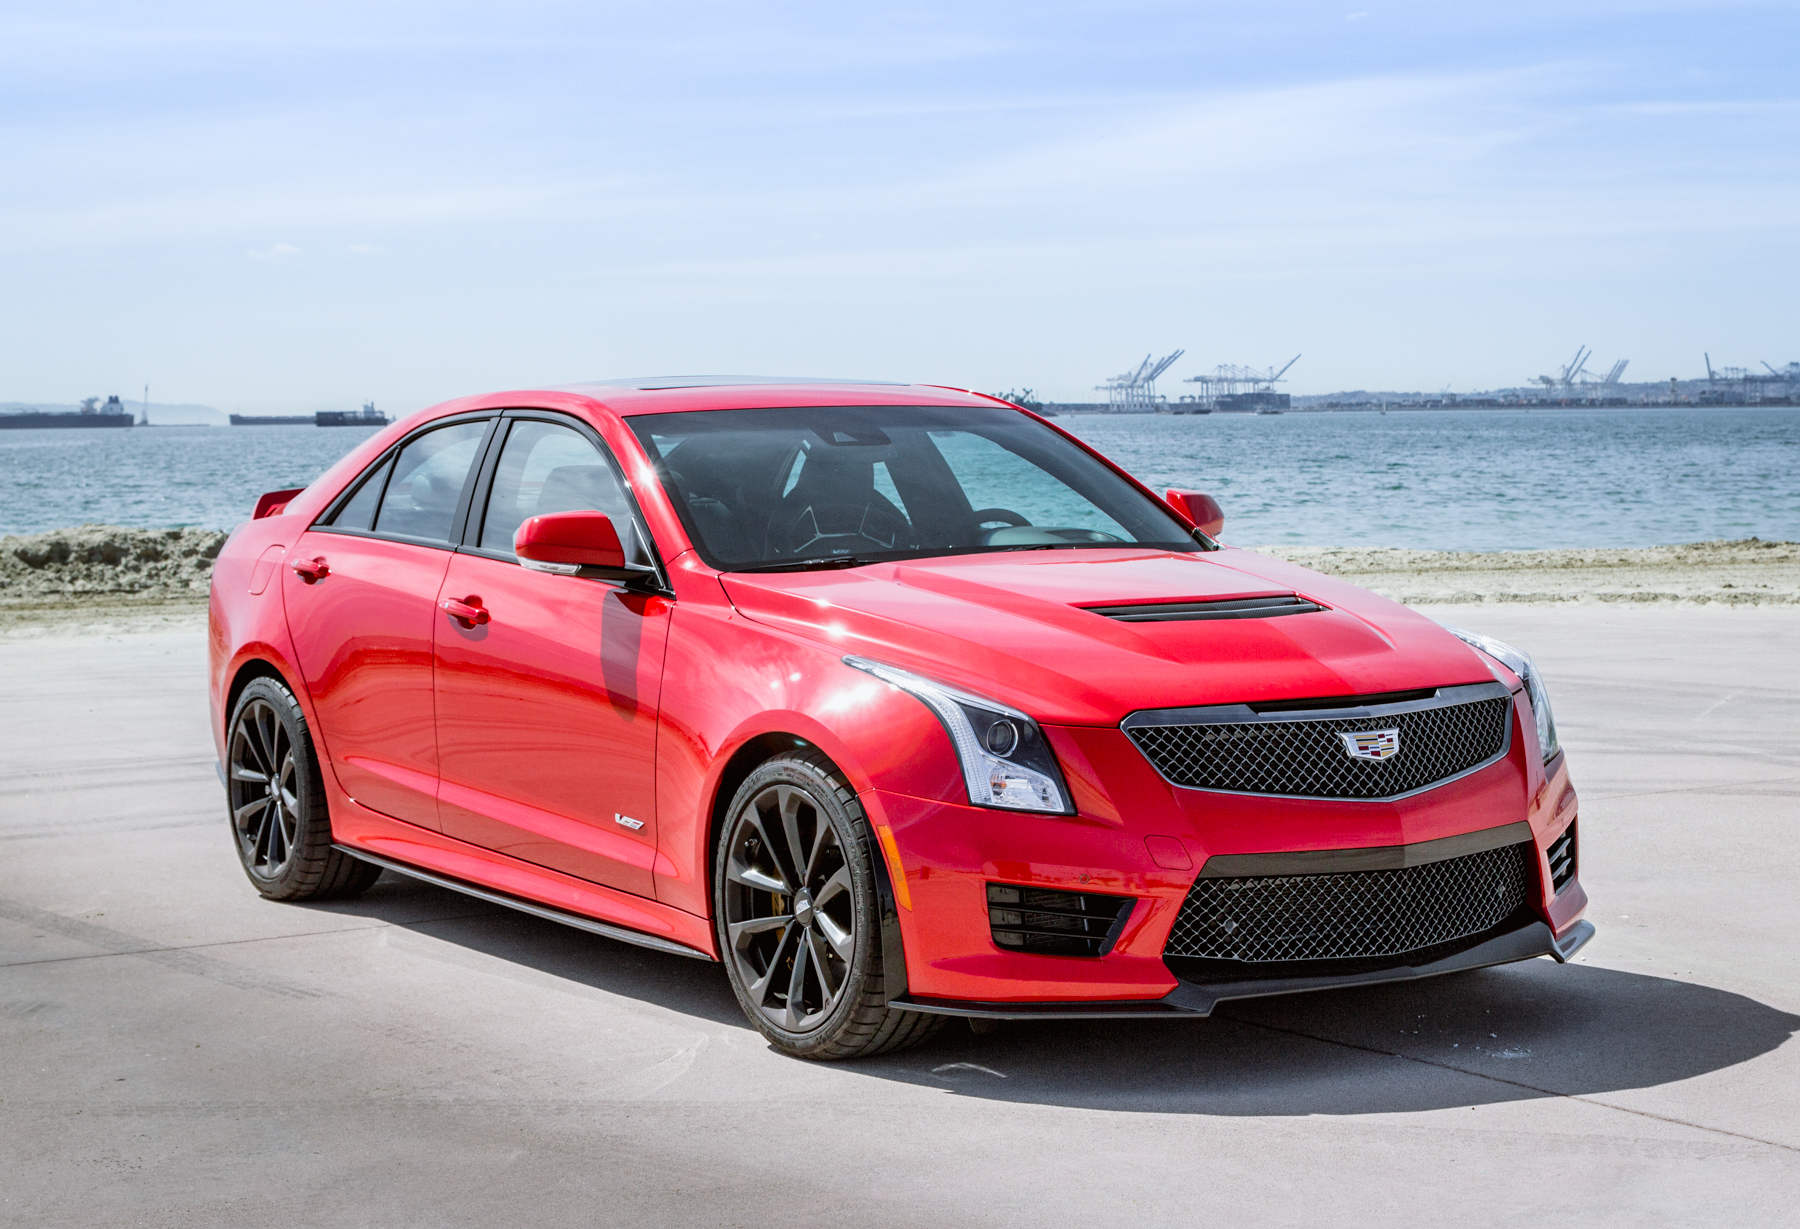 2017 Cadillac ATS-V Review - GTspirit